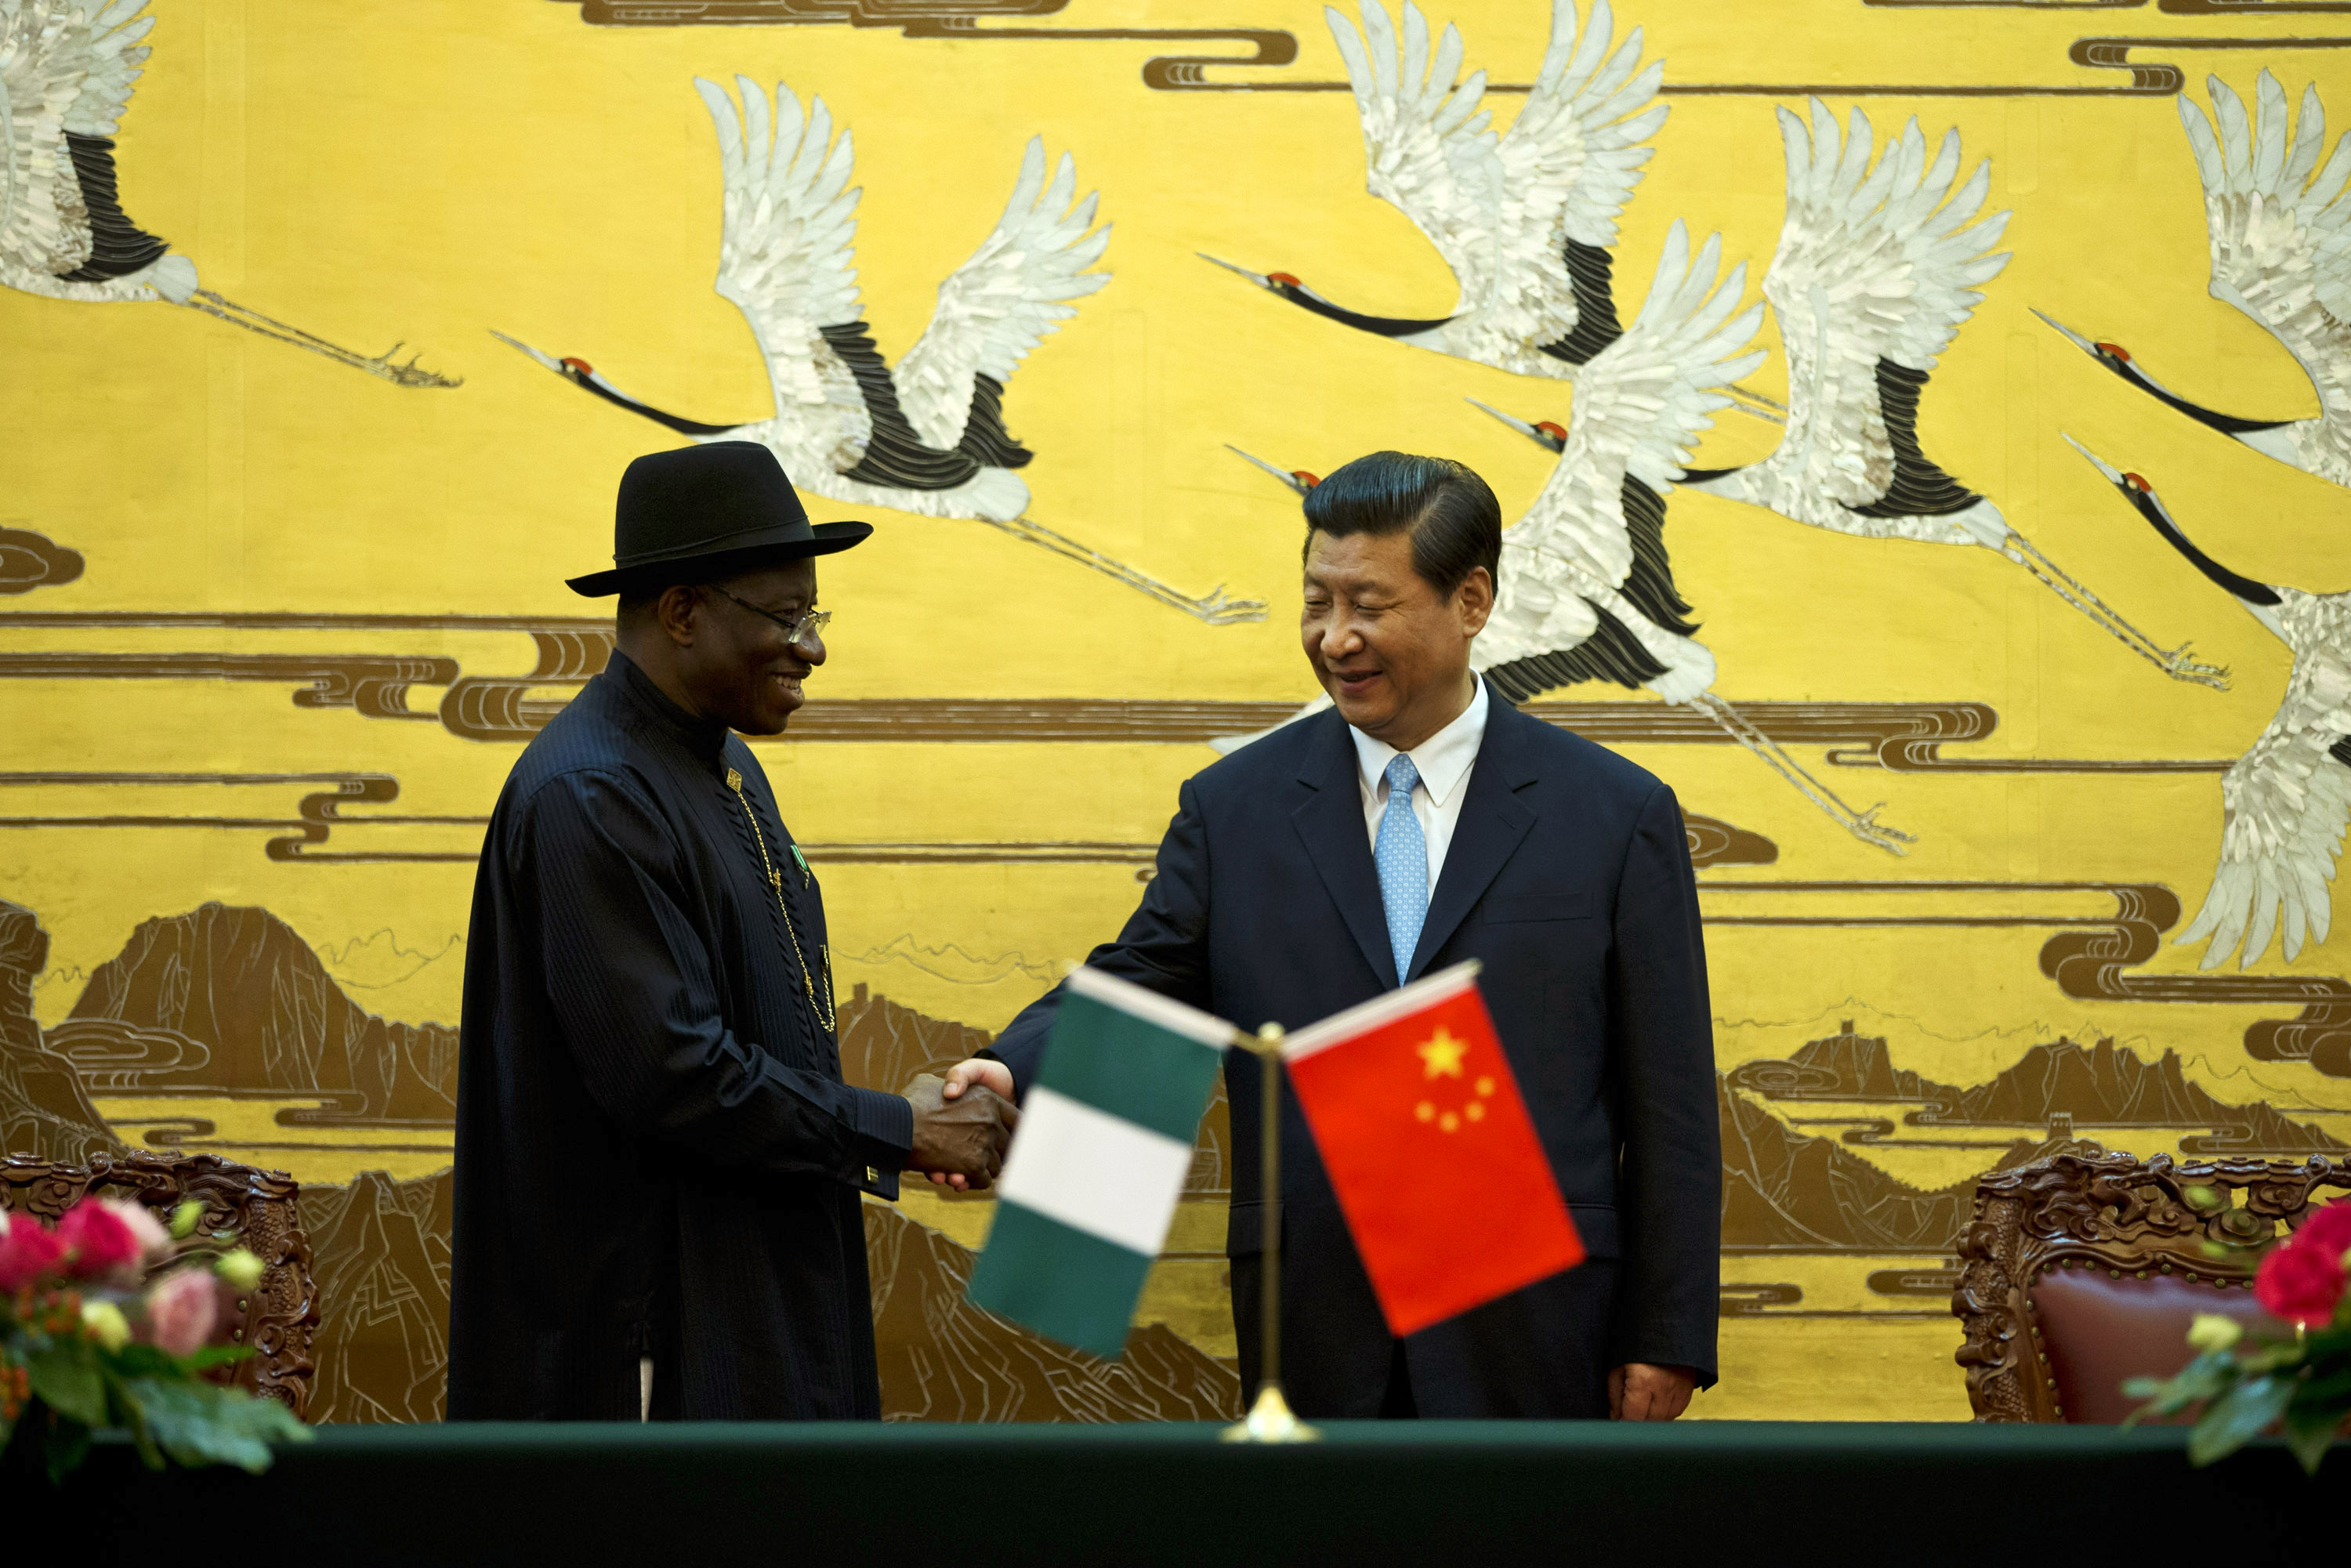 Chinese President Xi shakes hands with Nigerian President Jonathan after their ministers signed agreements in Beijing